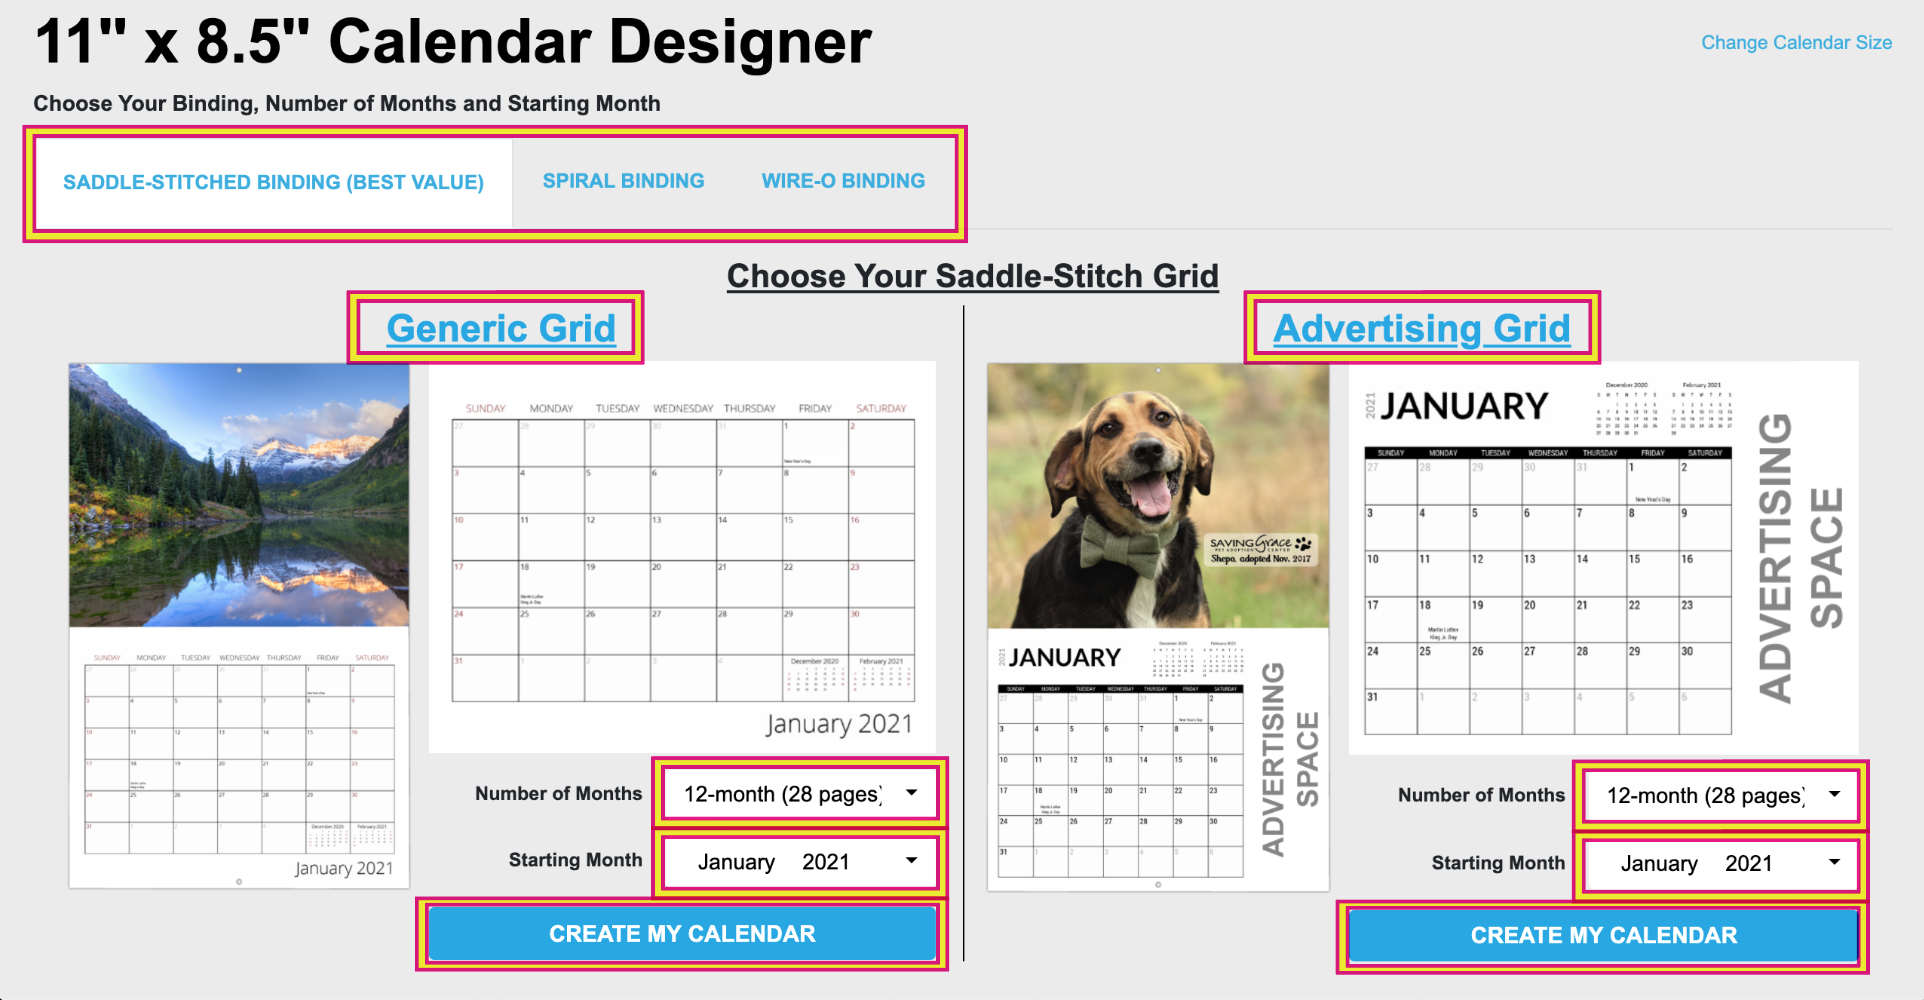 Choose Your Calendar Grid, Number of Months and Starting Month